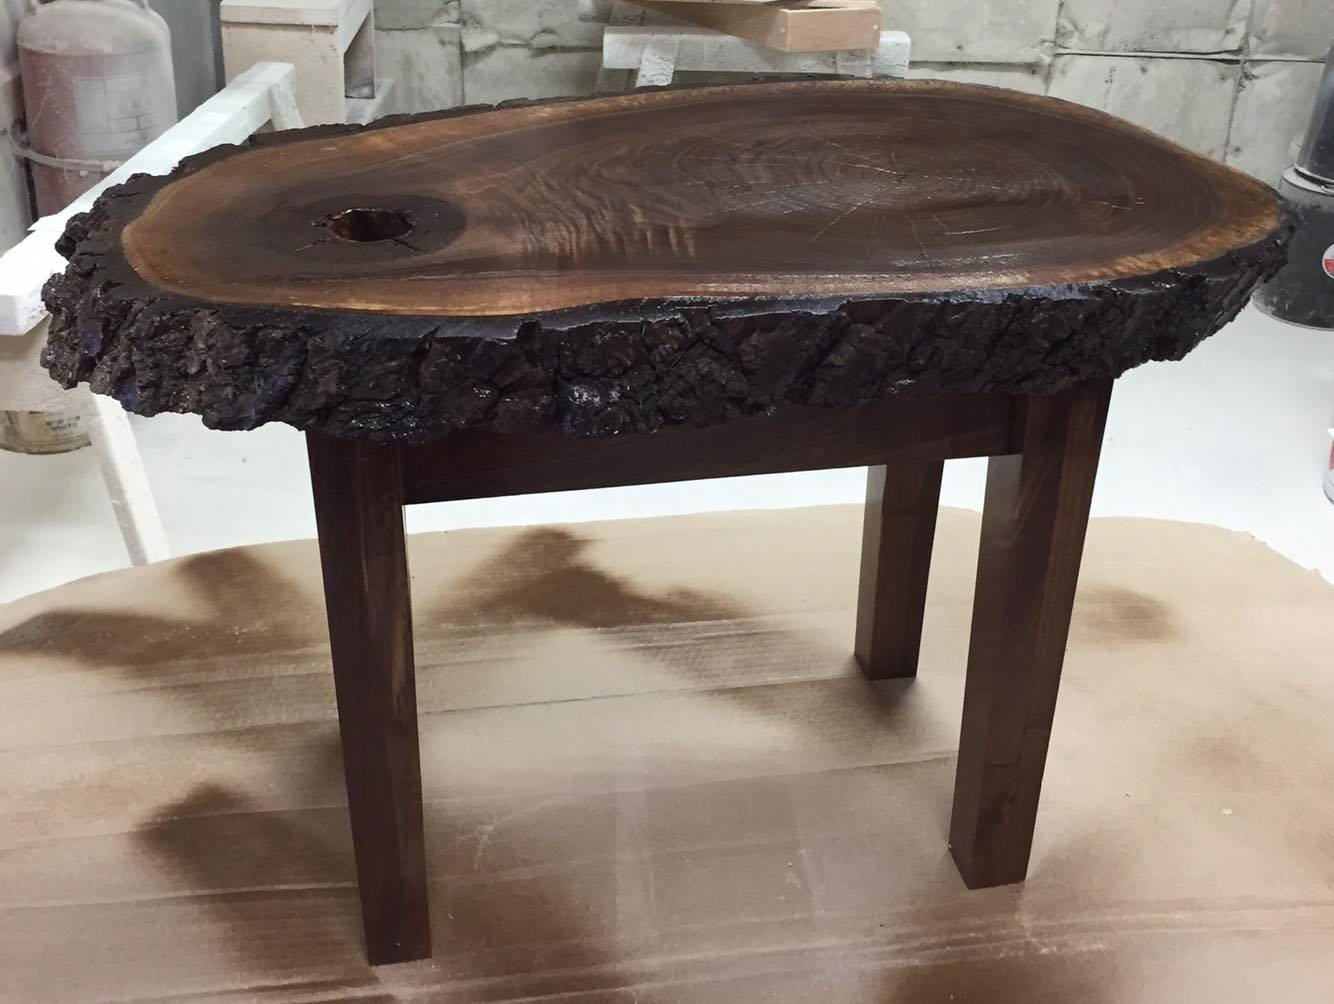 From Julie Kinsley: This is a solid walnut table I designed and built. Over the course of several days I sanded and smoothed and prepped the top surface , and then fabricated the legs of the table after that.